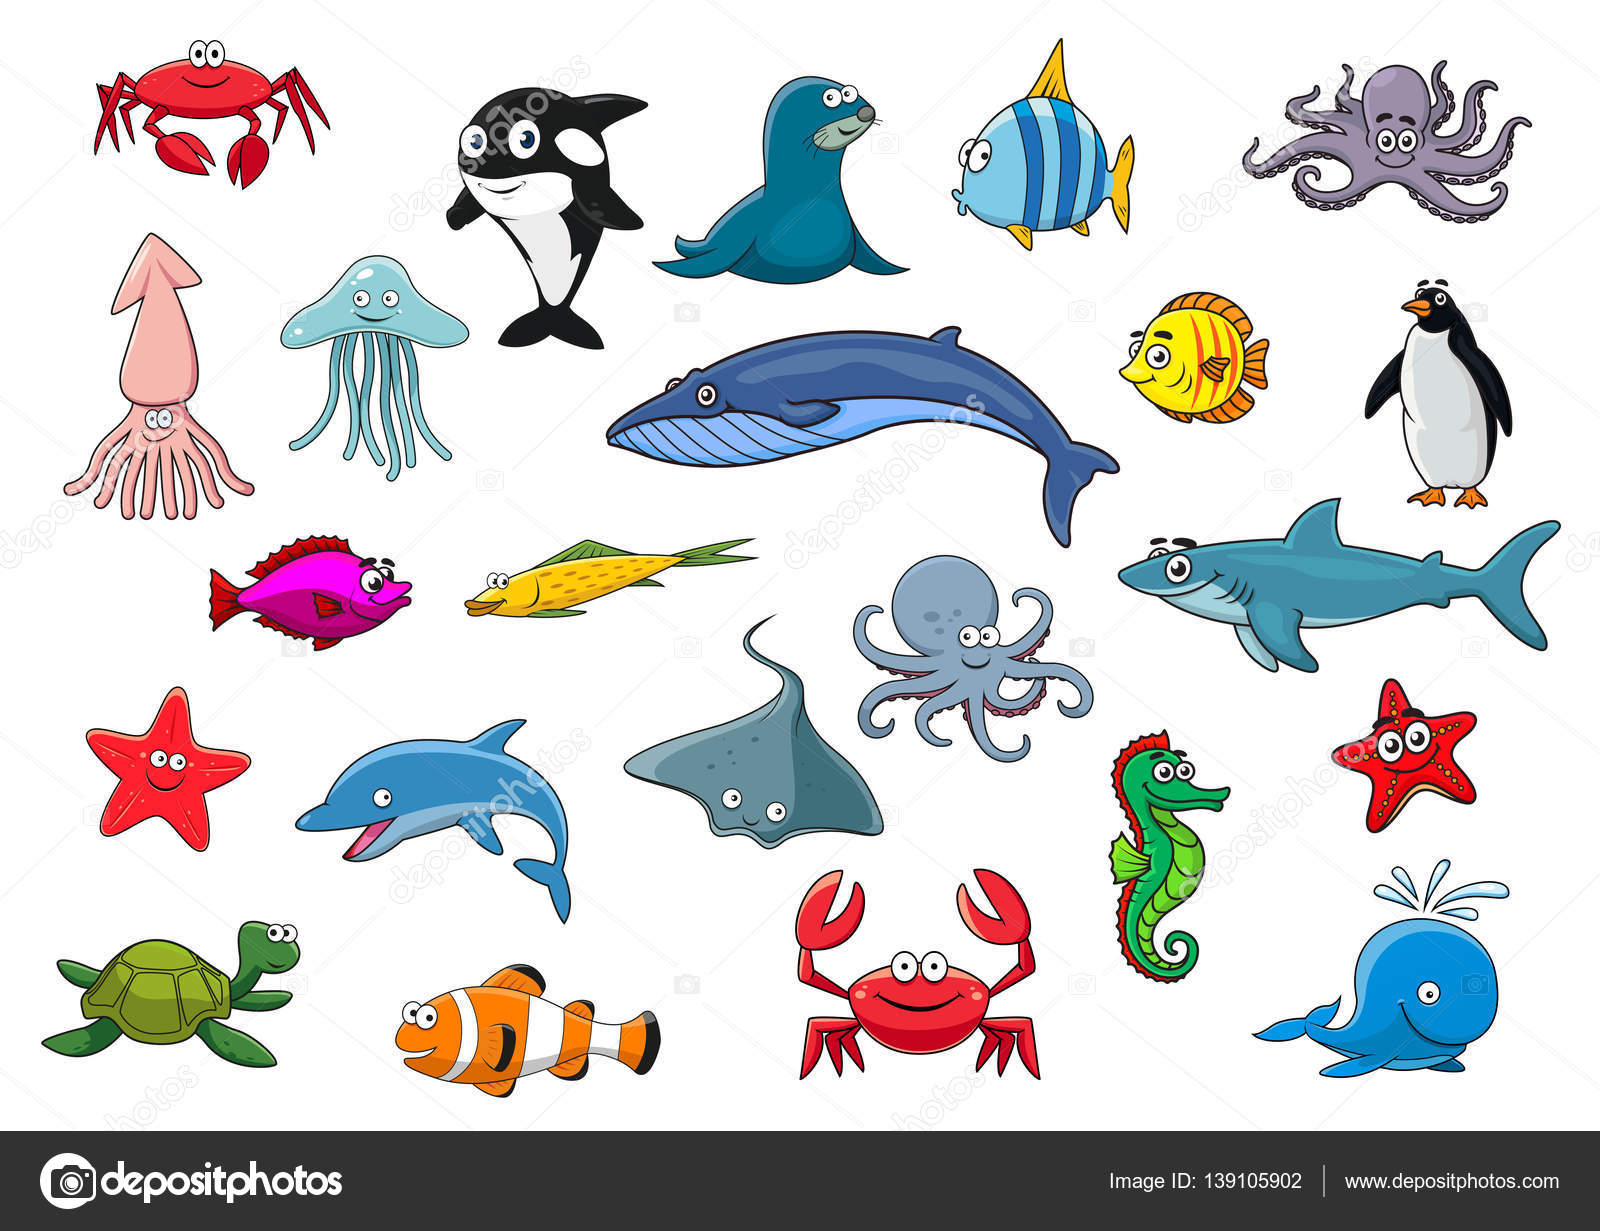 Dibujos Animados Mar Peces Mar Animales Vectores Iconos Y